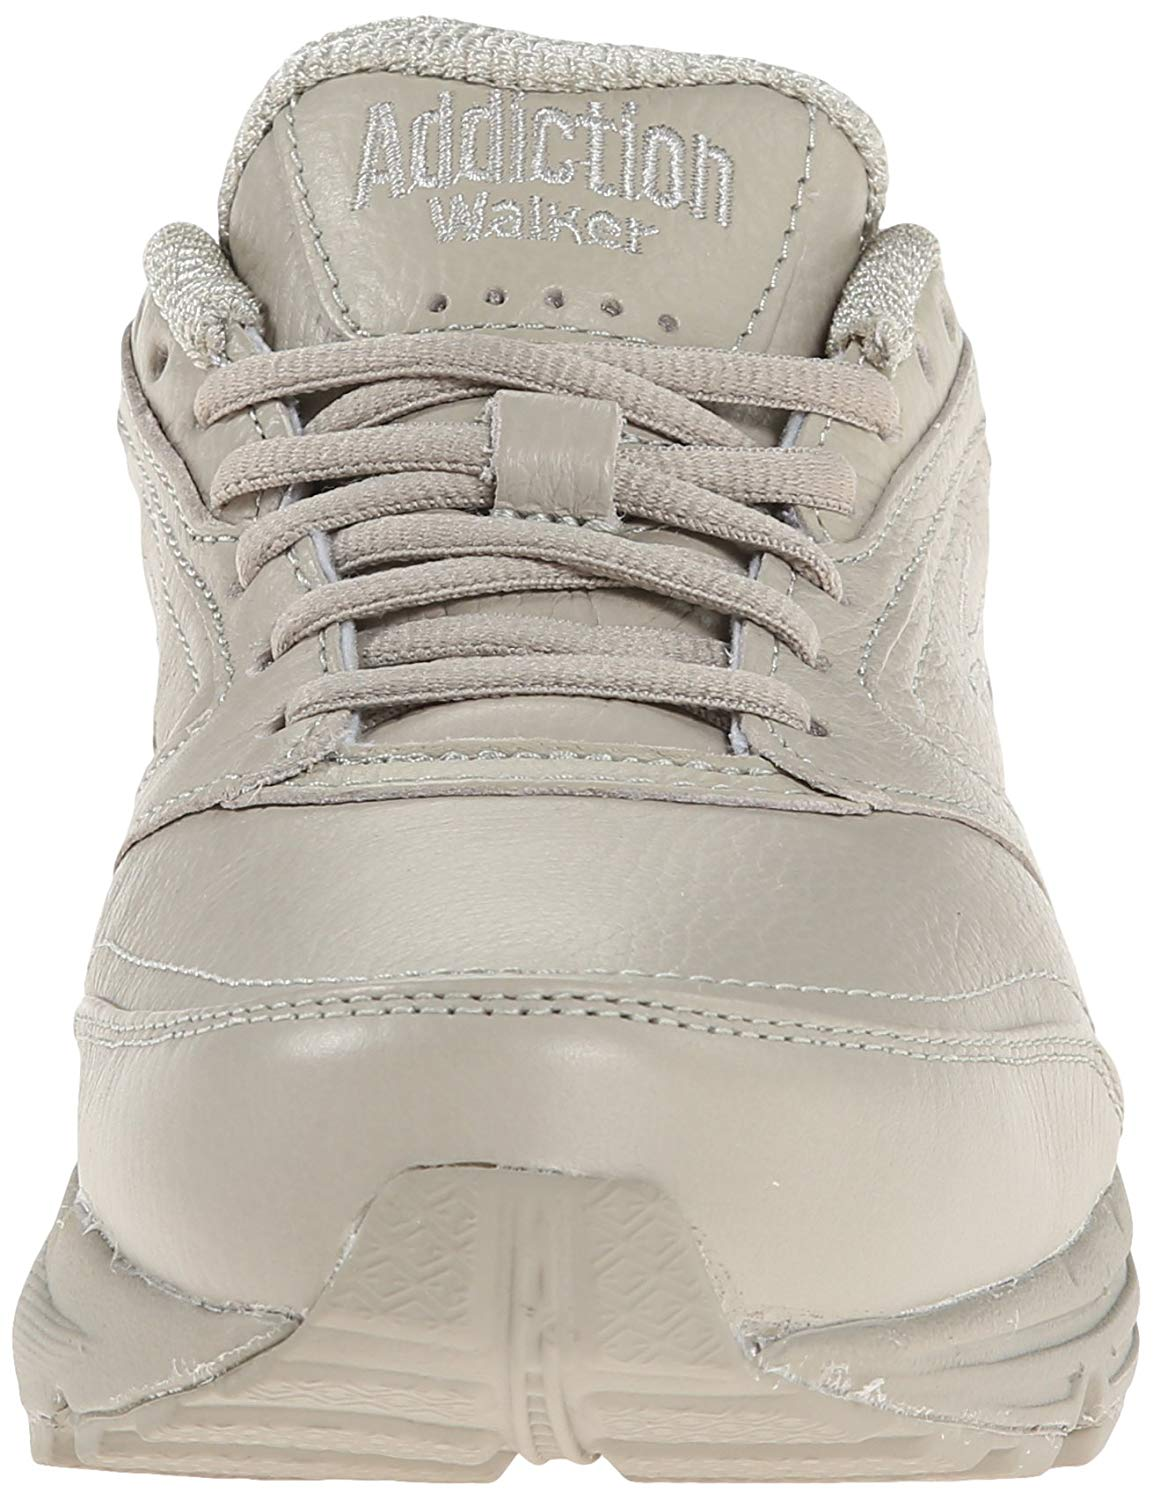 Brooks donna Addiction Walker Walker Walker Leather Low Top Lace Up Running, Bone, Dimensione 6.0 6 cfbc91